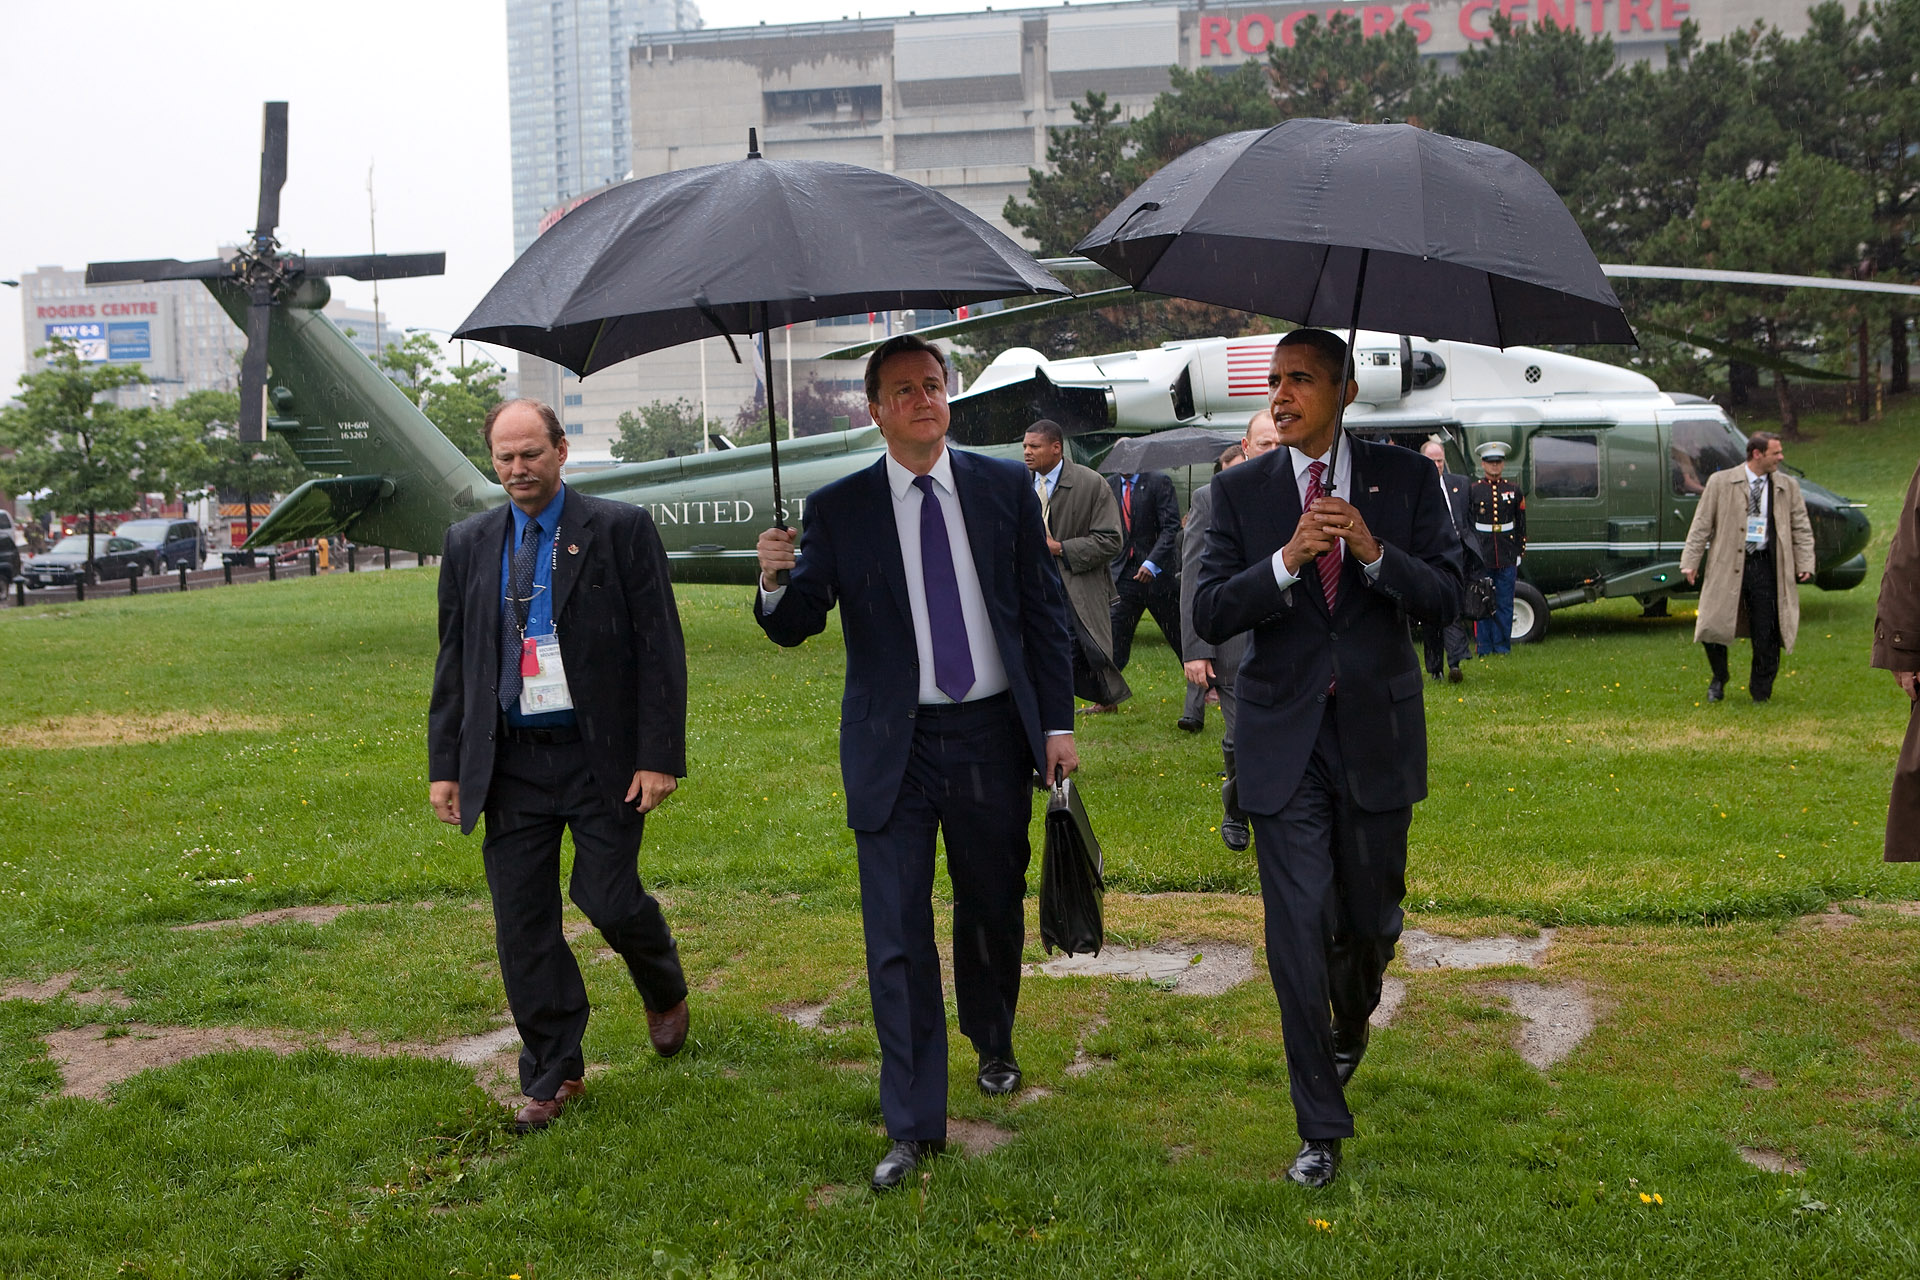 President Barack Obama and British Prime Minister David Cameron Walk in Rain from G8 Summit